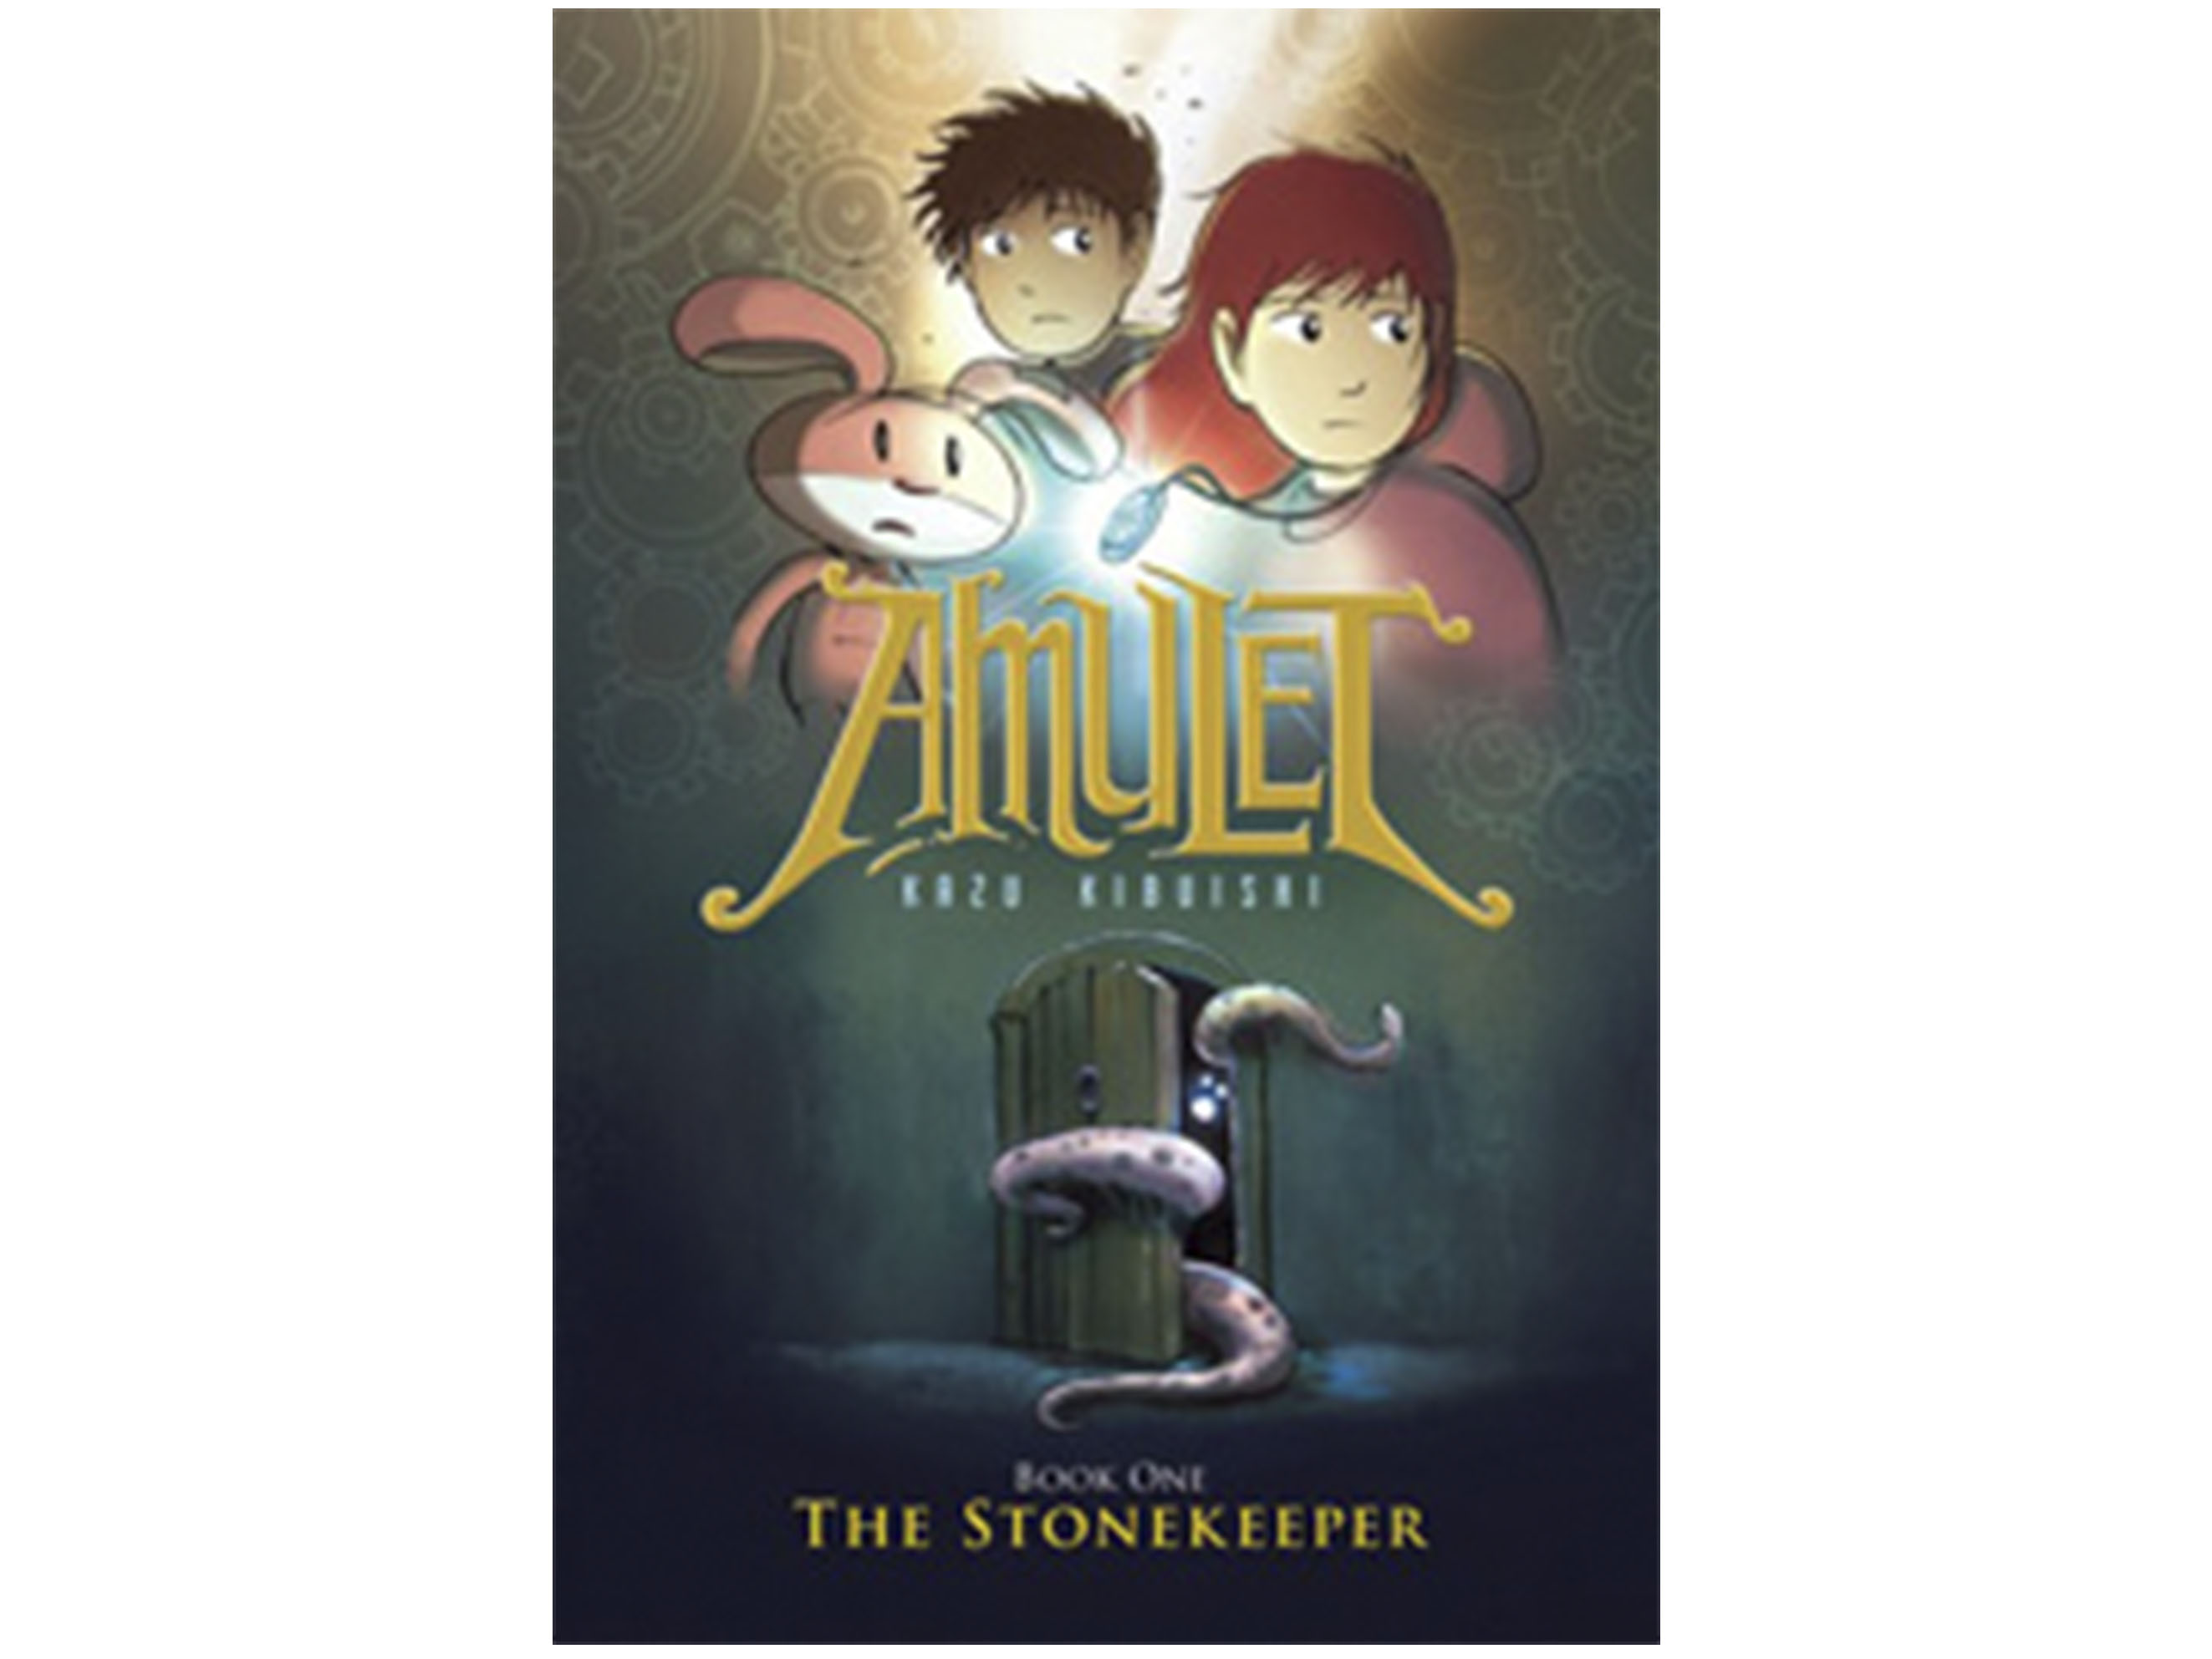 Amulet Book 1 The Stonekeeper Focus